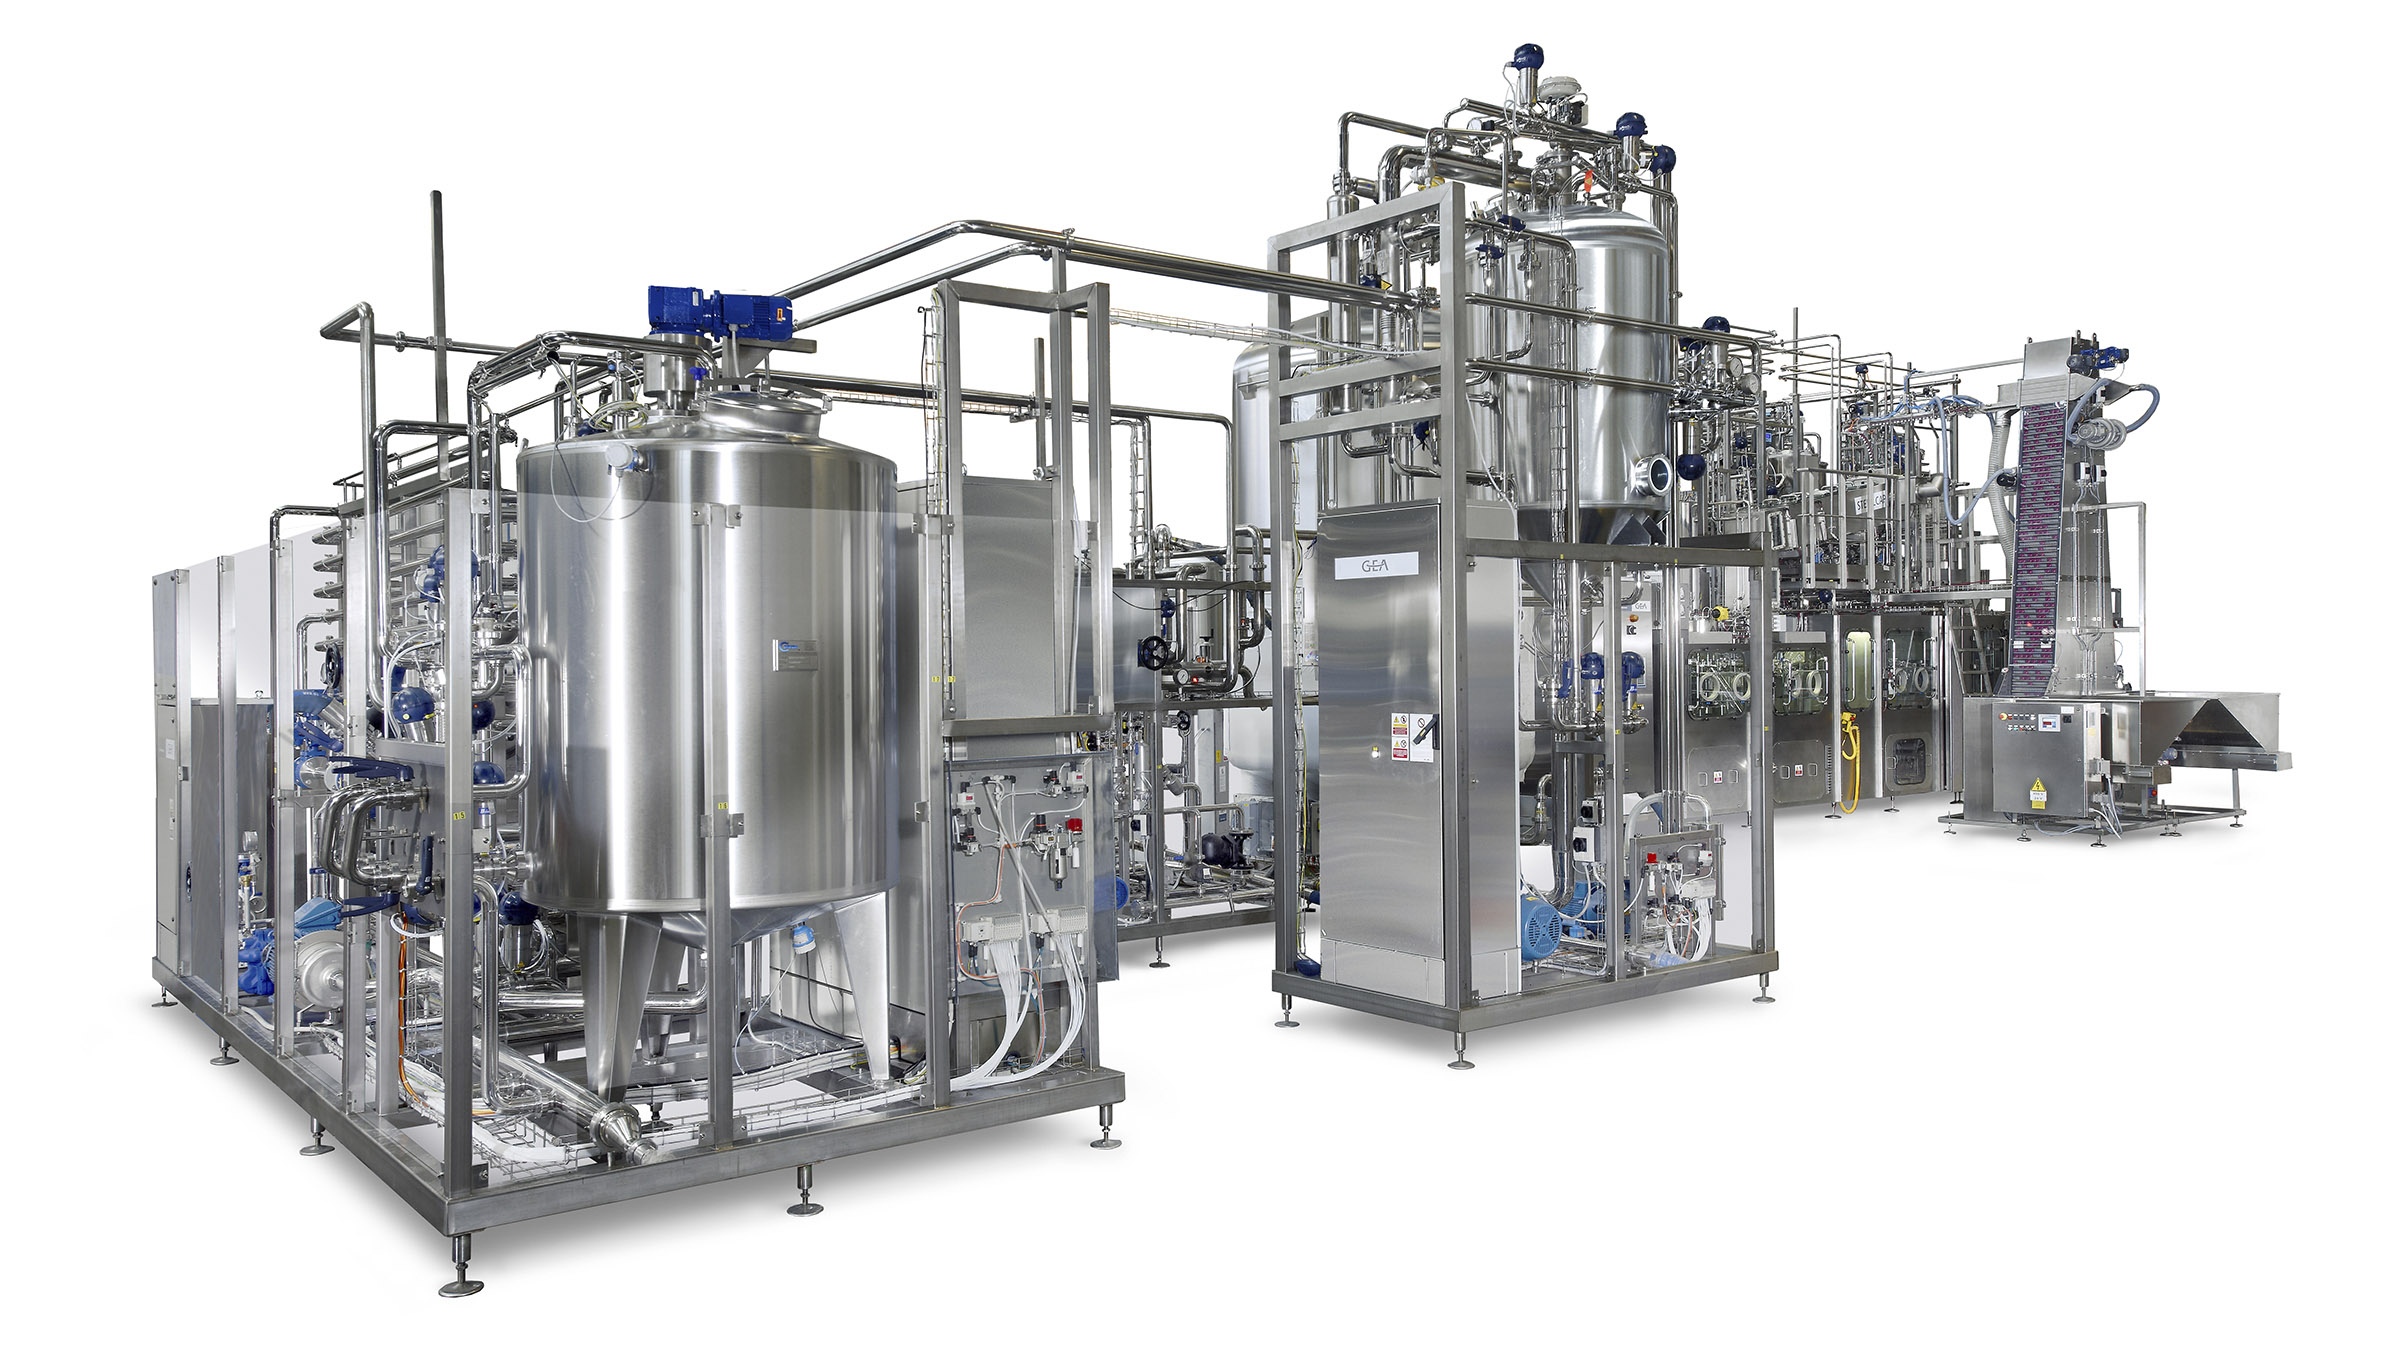 Product pasteurization is an important step in the whole aseptic process.